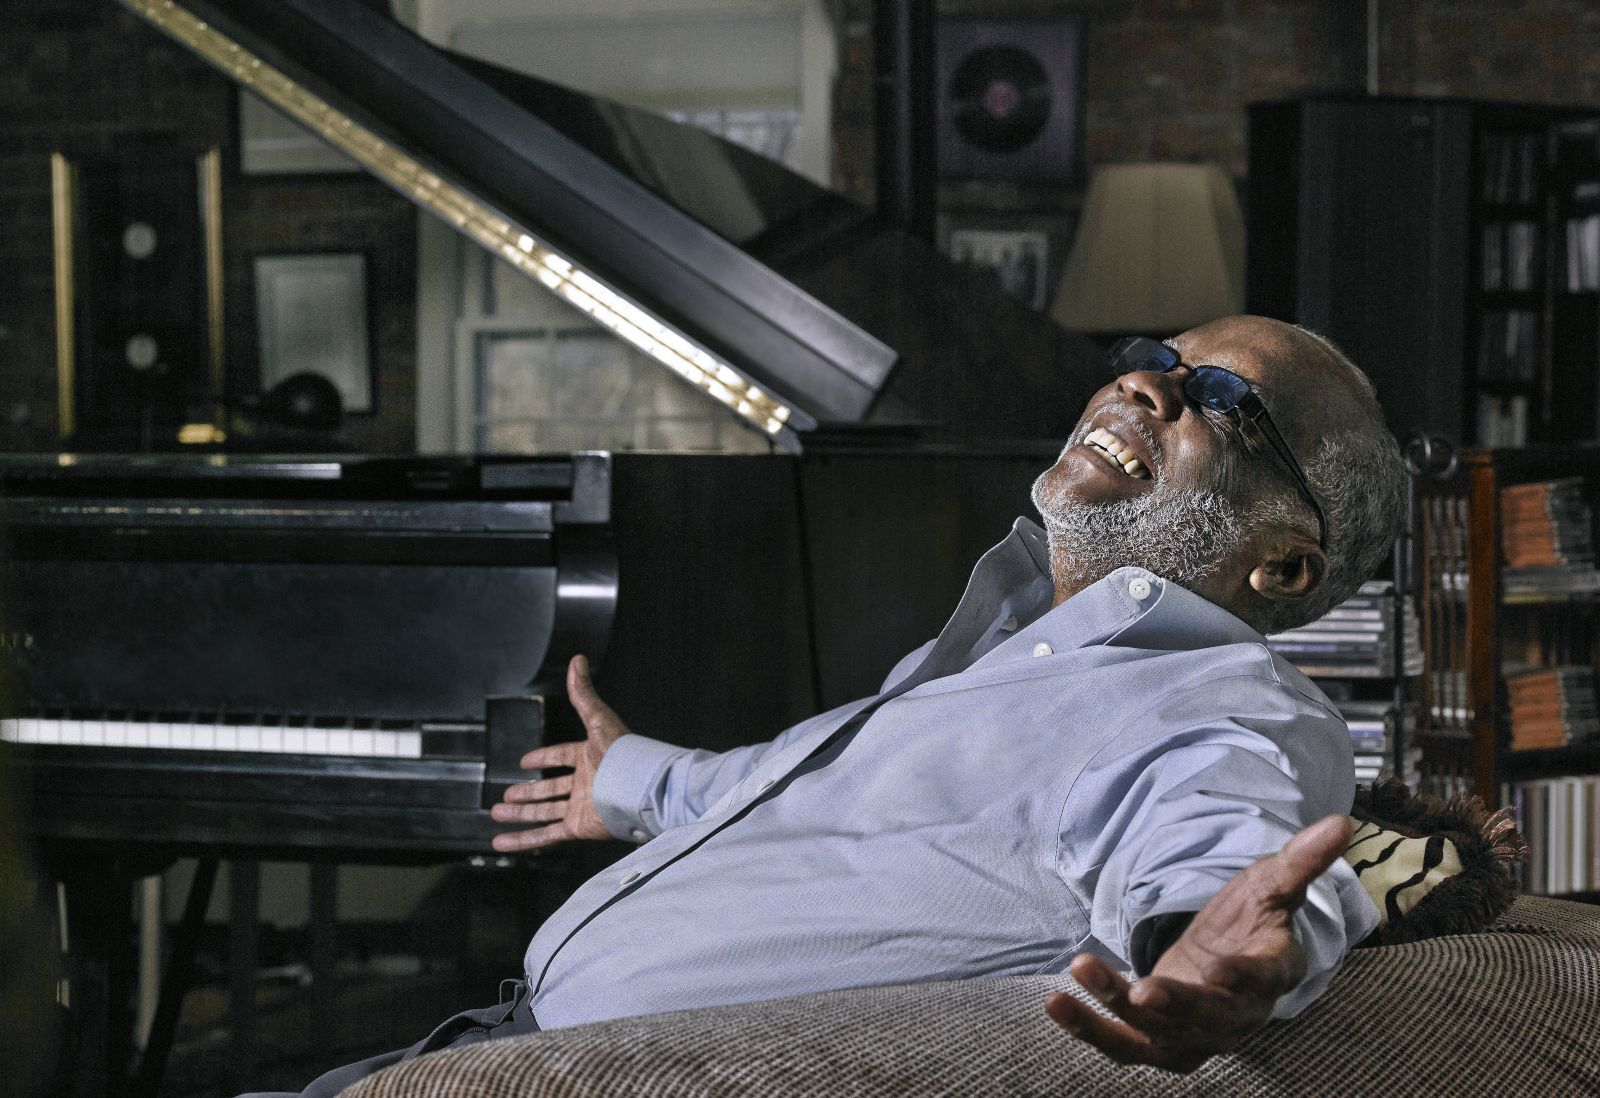 ahmad_jamal_cf044318_couleur_hd_big-rjmlubrano-flip-opt.jpg